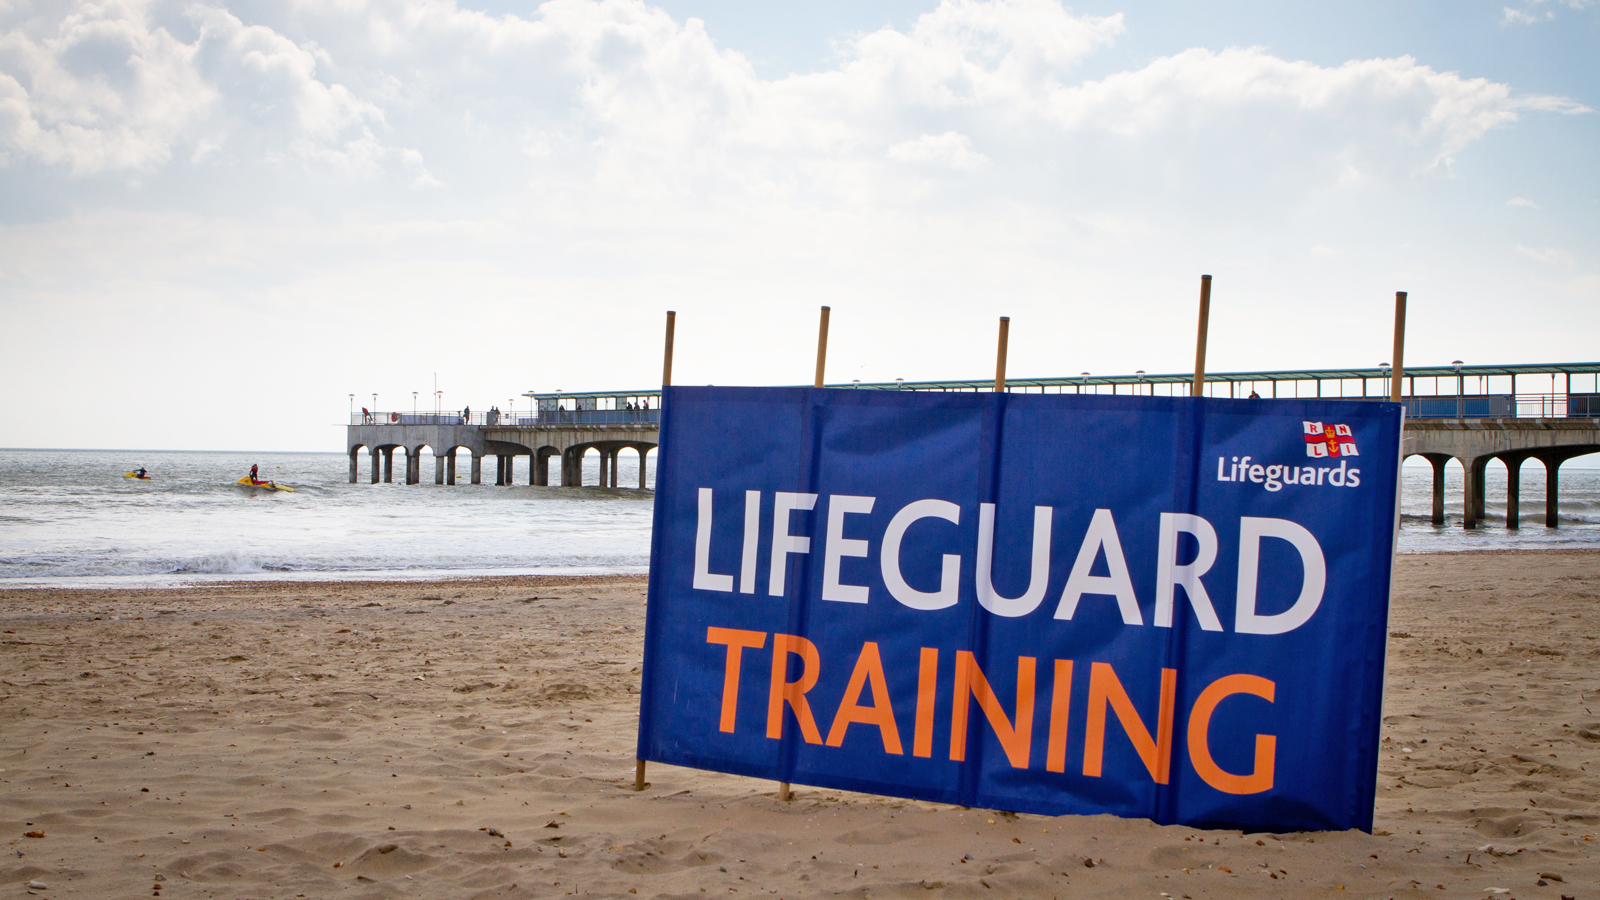 Lifeguard training sign on the beach